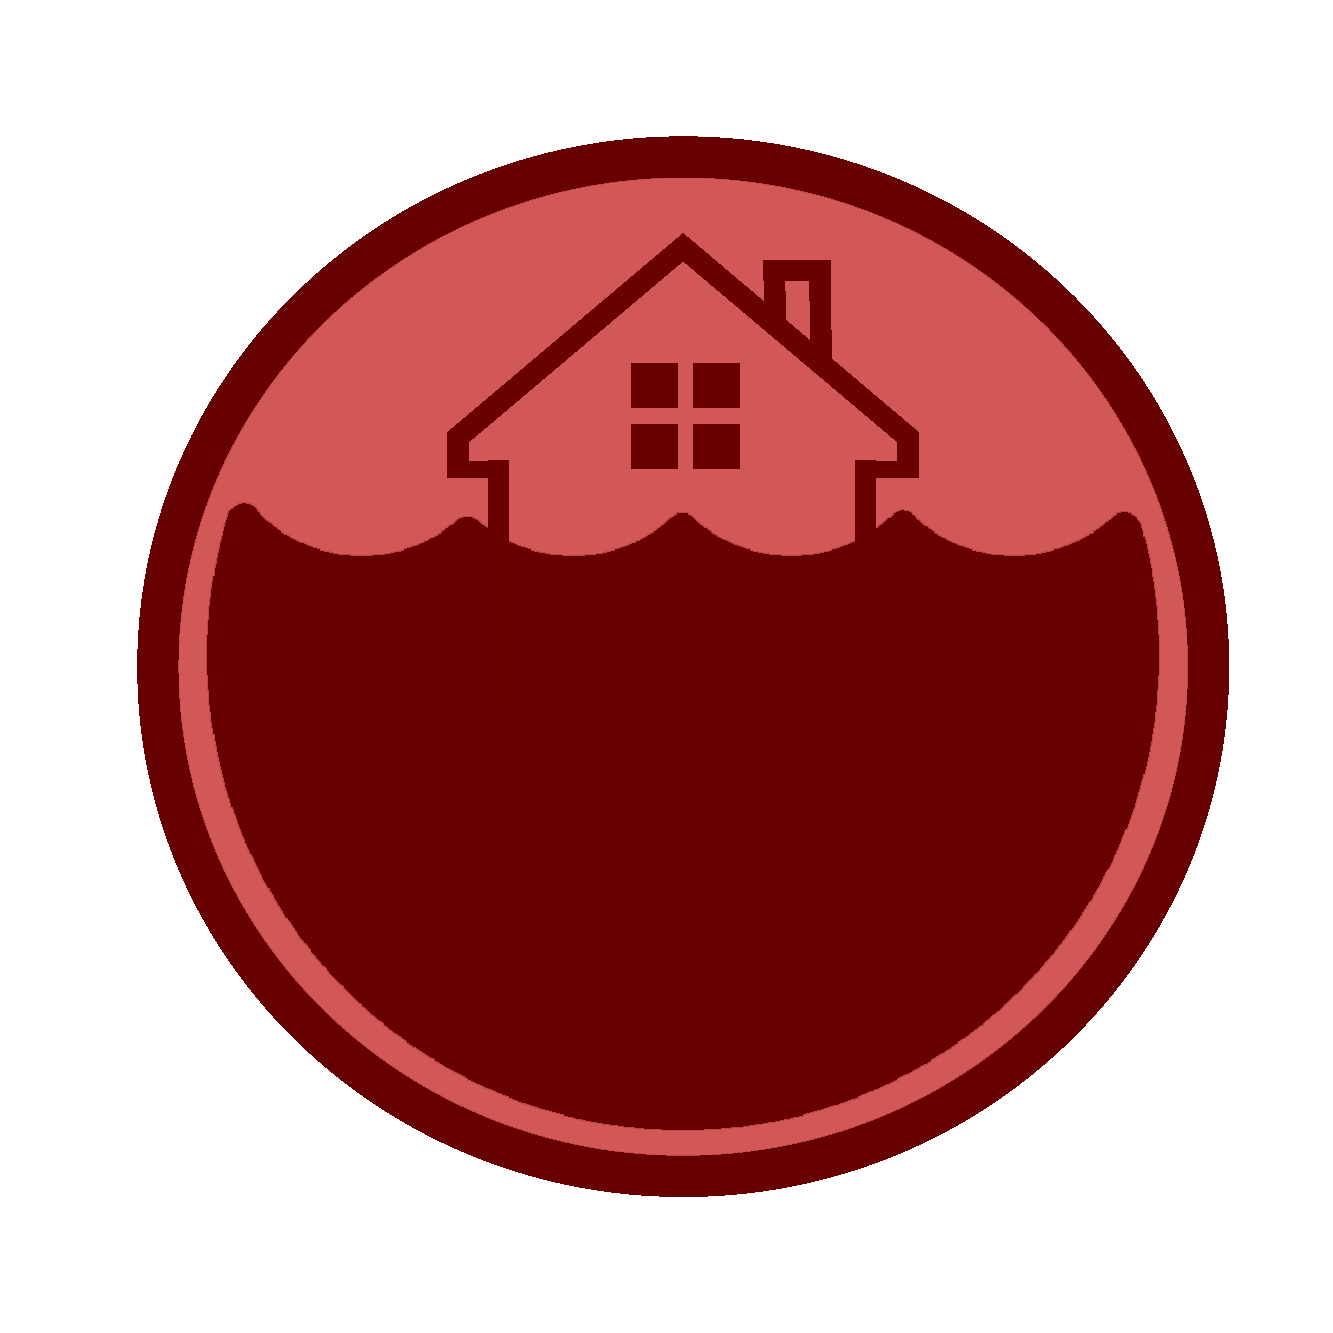 FloodInundationLevelsIcon